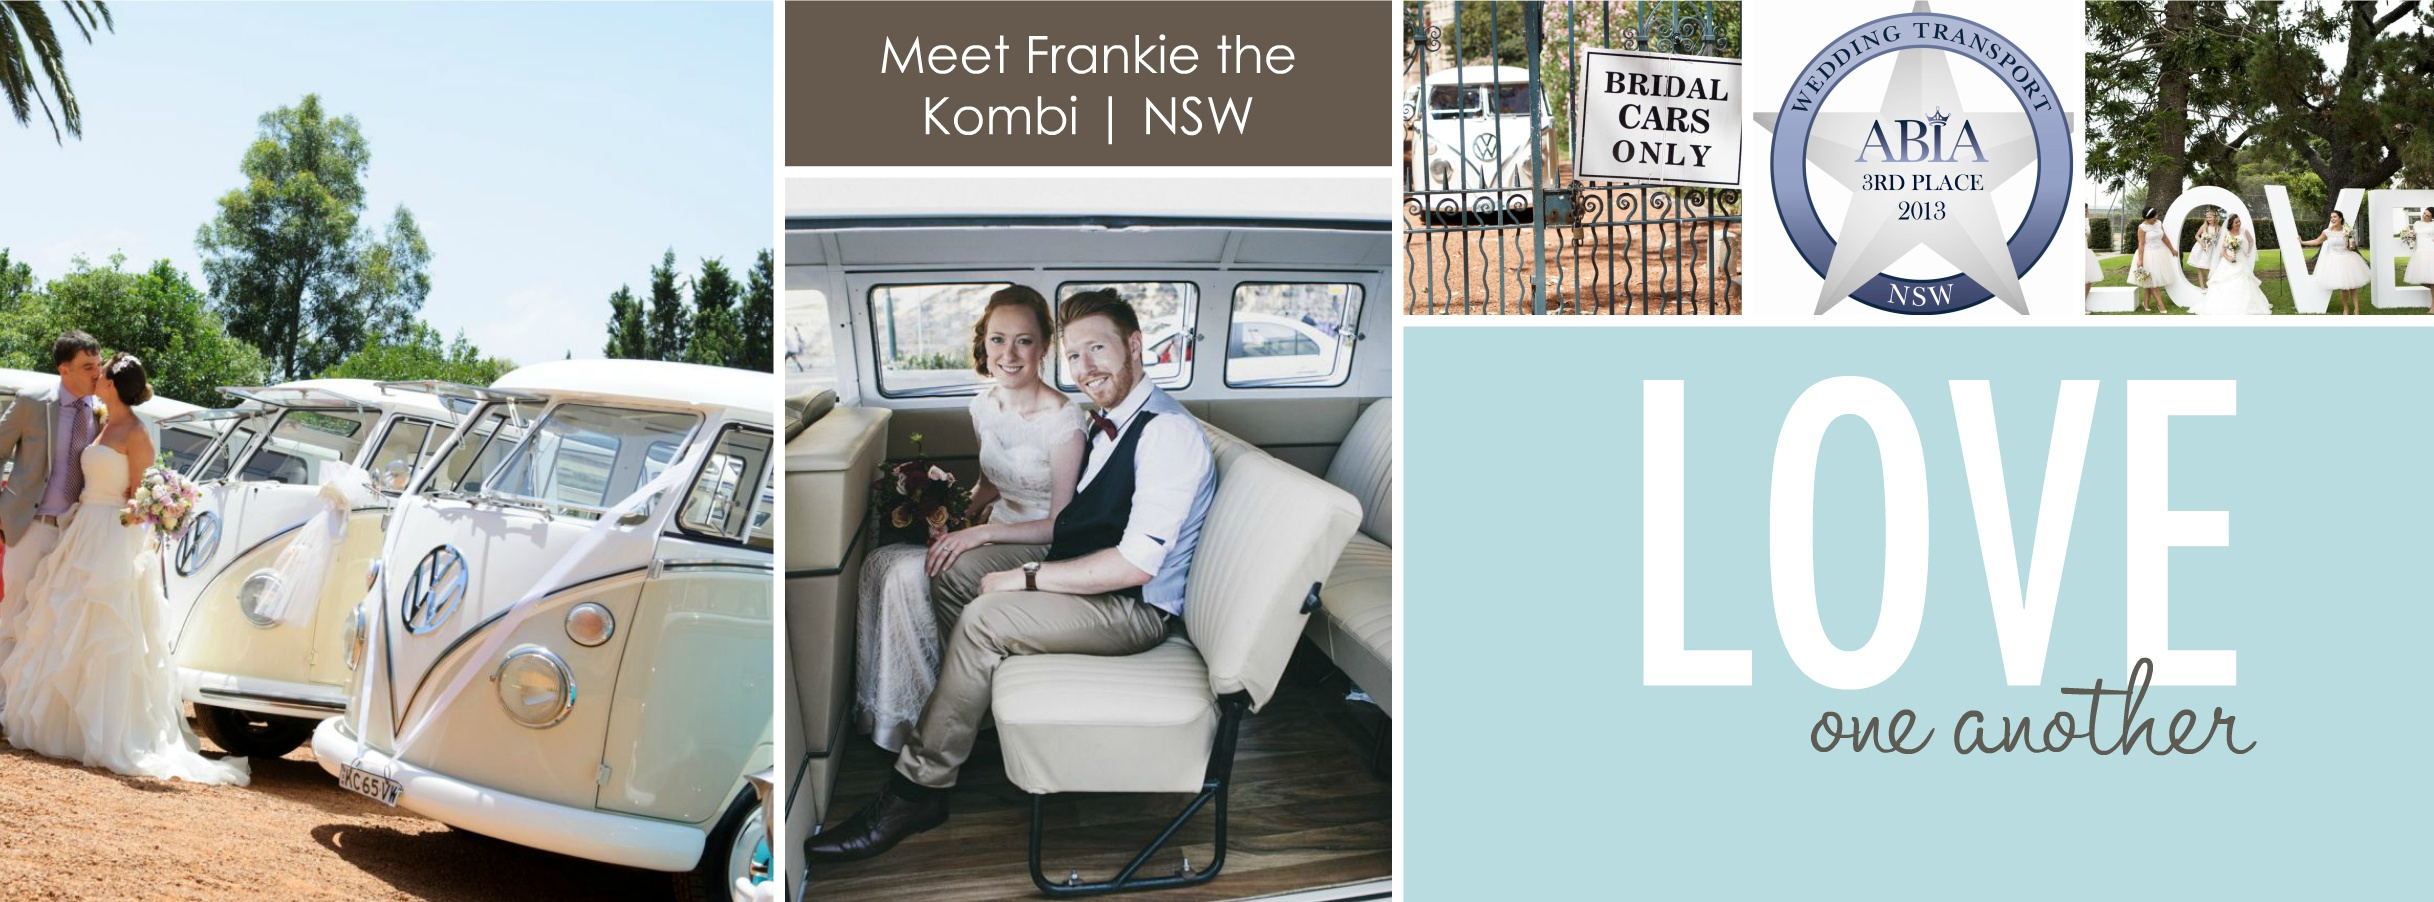 frankie-the-kombi